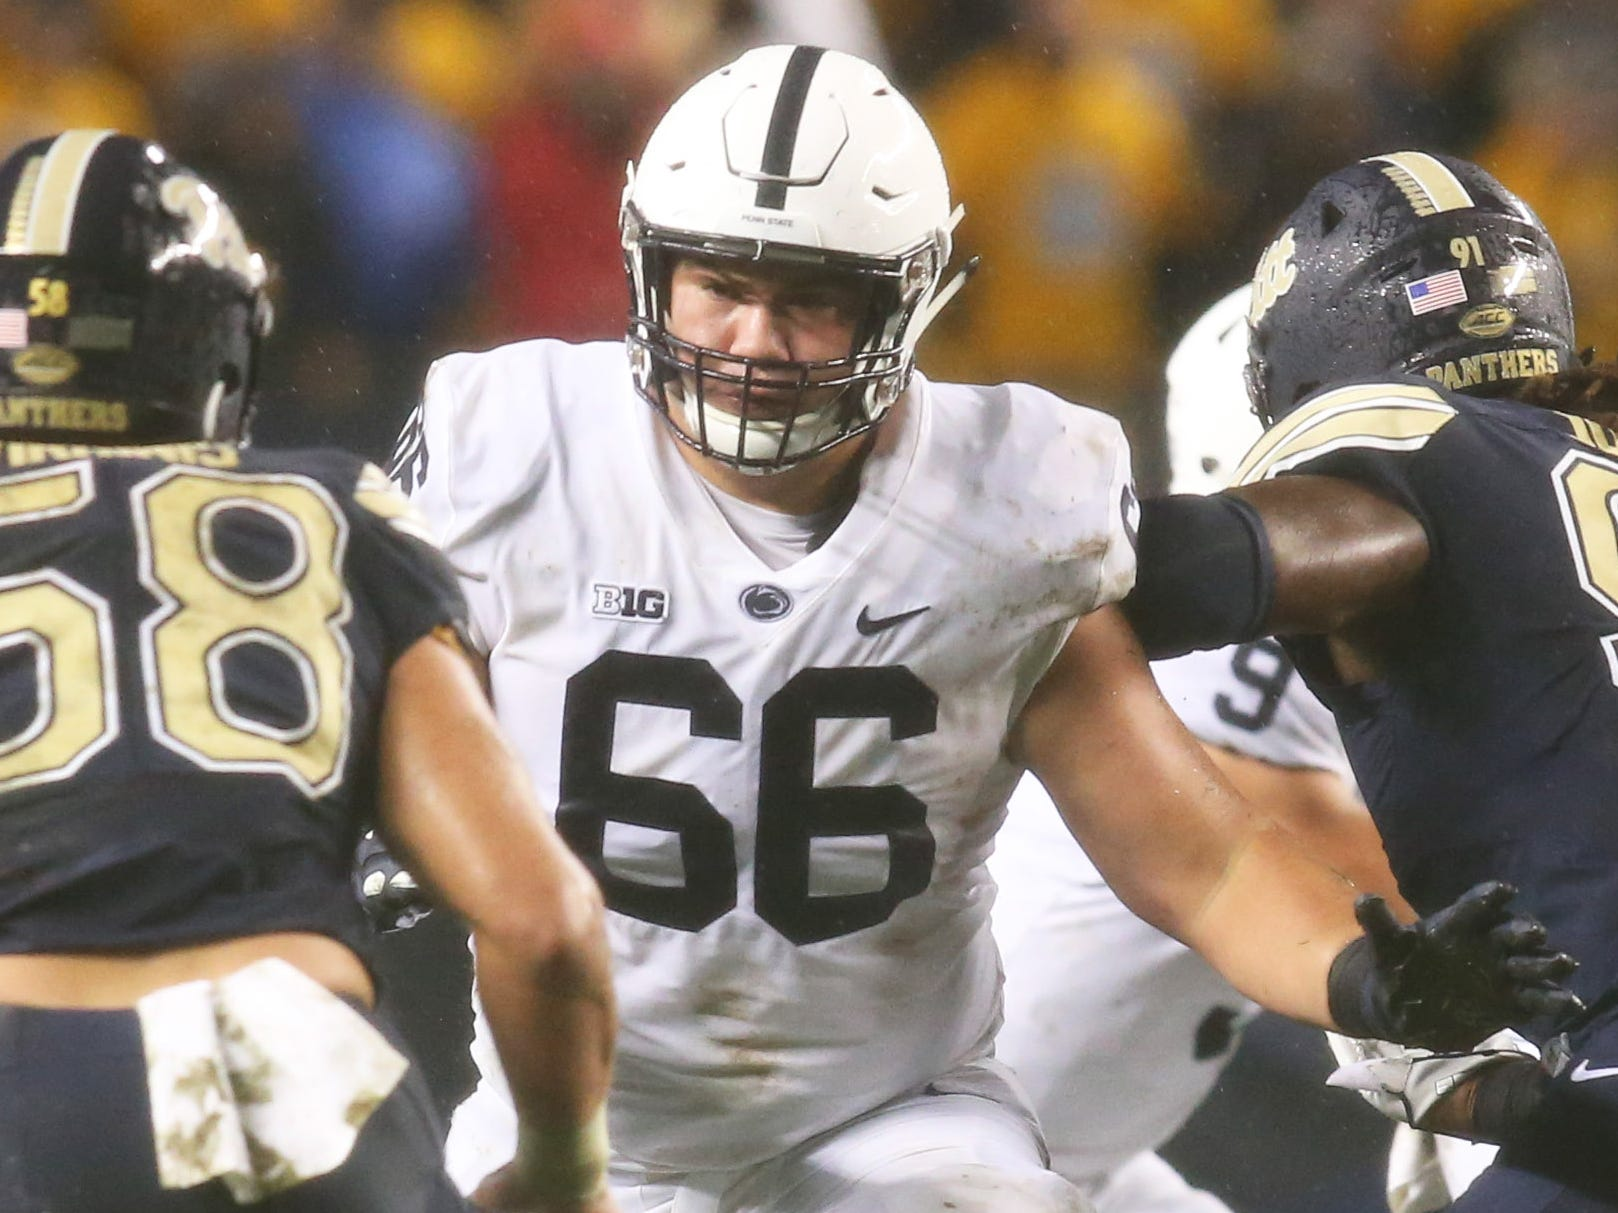 Connor McGovern, OG, Penn State